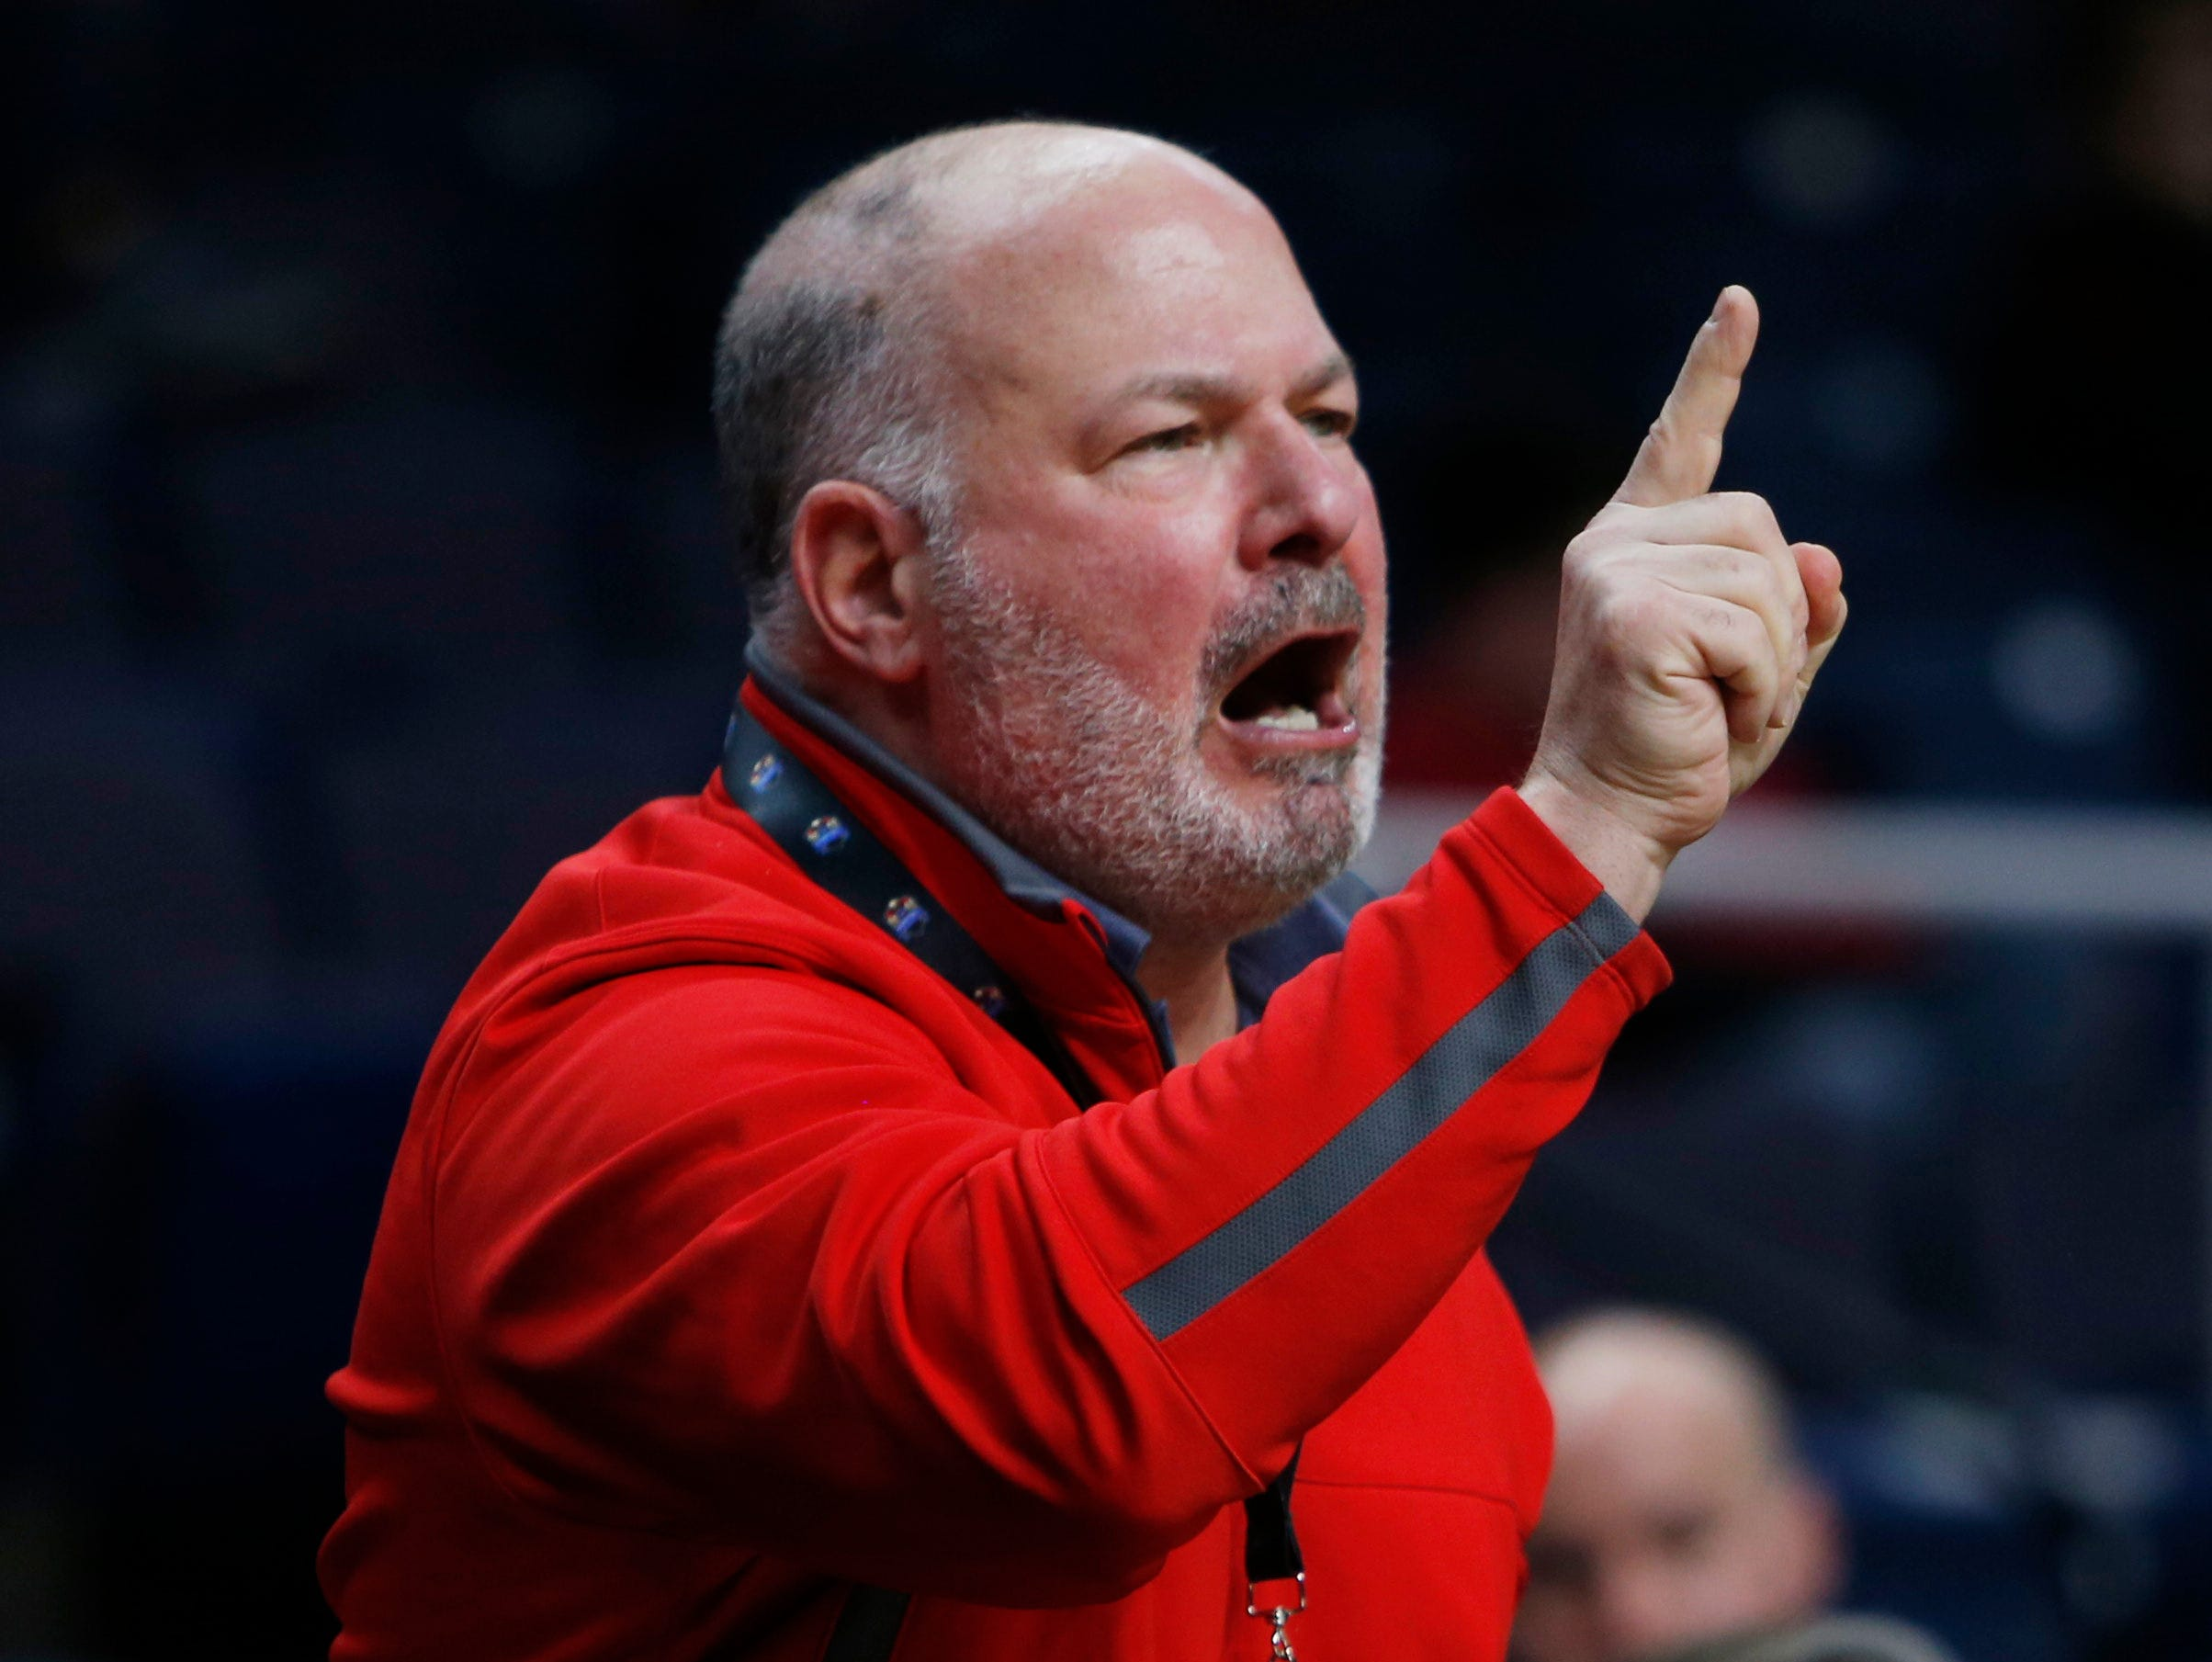 Marist College's president David Yellen disagrees with a call from one of the referees during the MAAC championship versus Quinnipiac in Albany on March 11 2019.